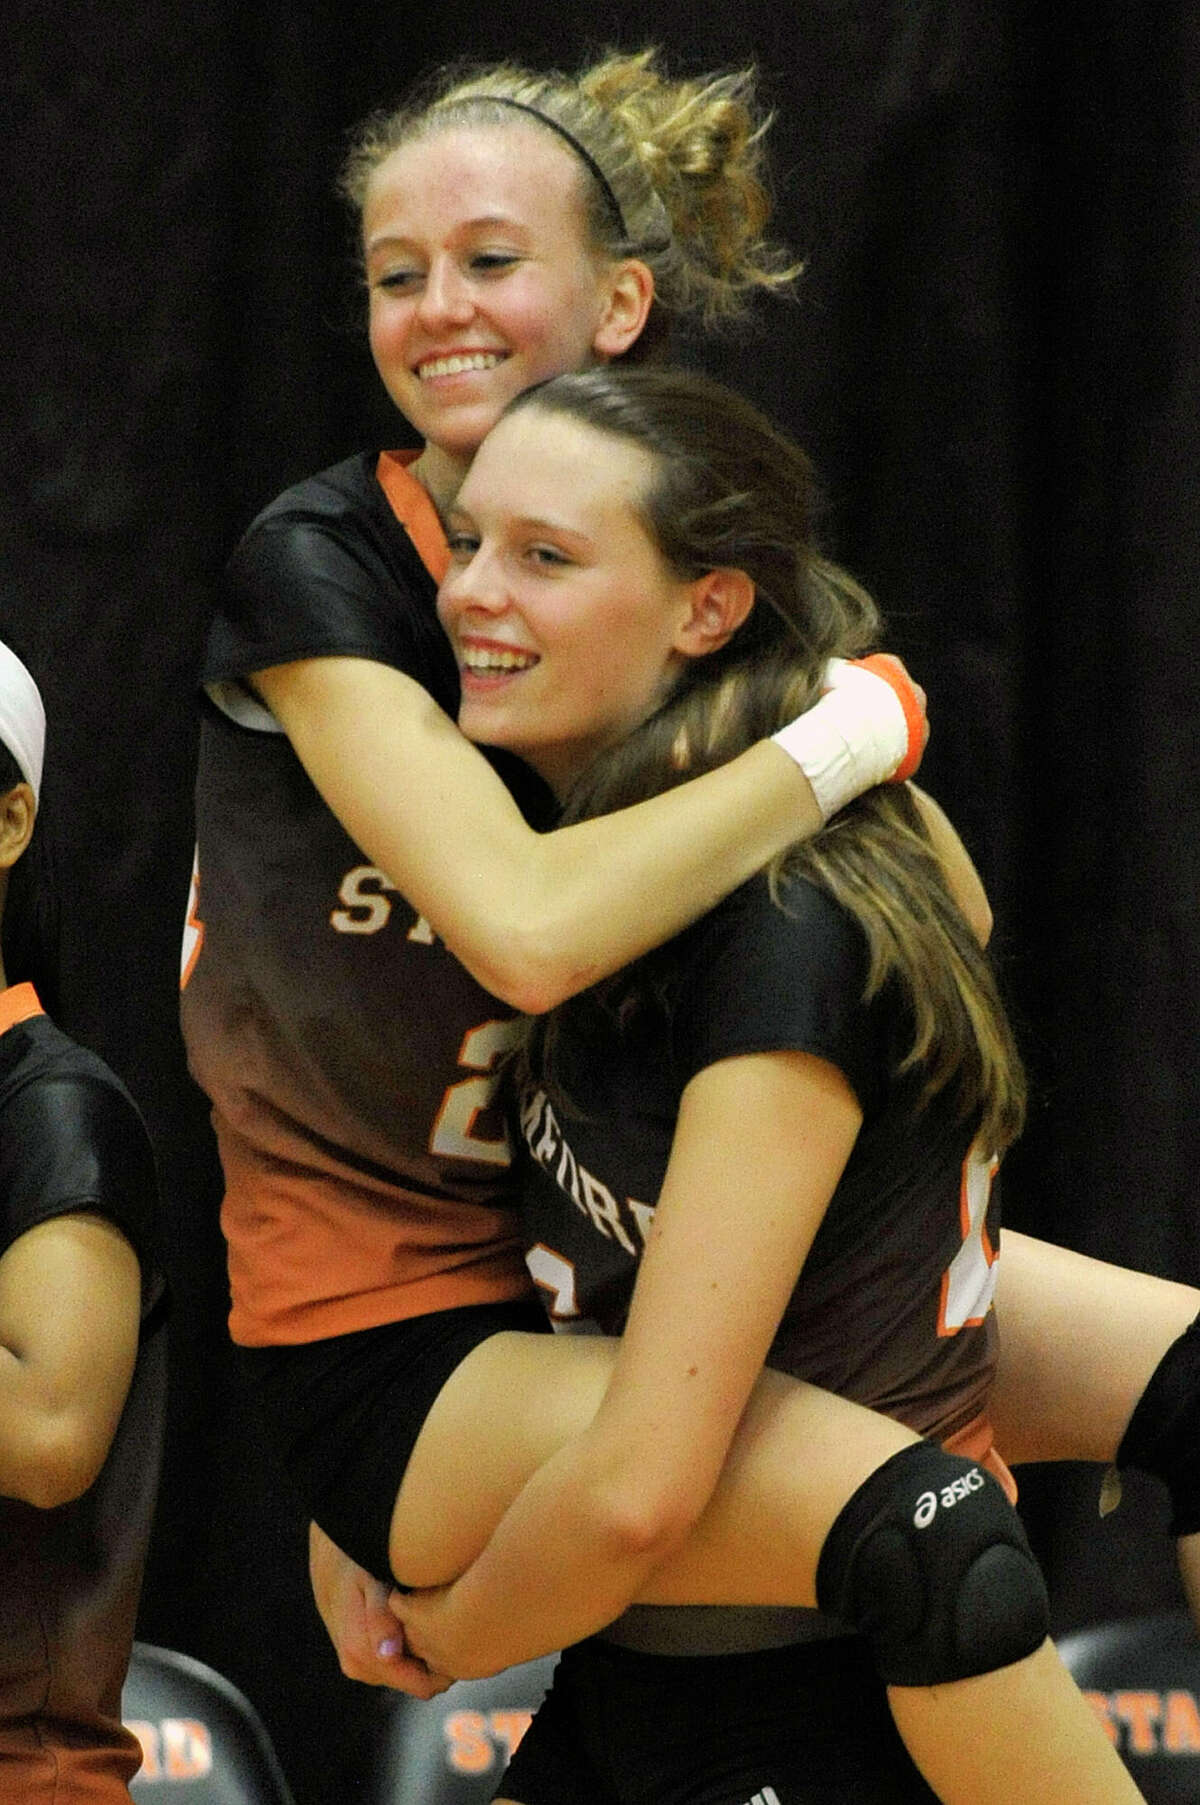 Stamford's Cali Schenkel carries her team mate Liisa Balazs after beating Greenwich, 3-2, in their Class LL second round playoff volleyball match at Stamford High School in Stamford, Conn., on Thursday, Nov. 6, 2014.